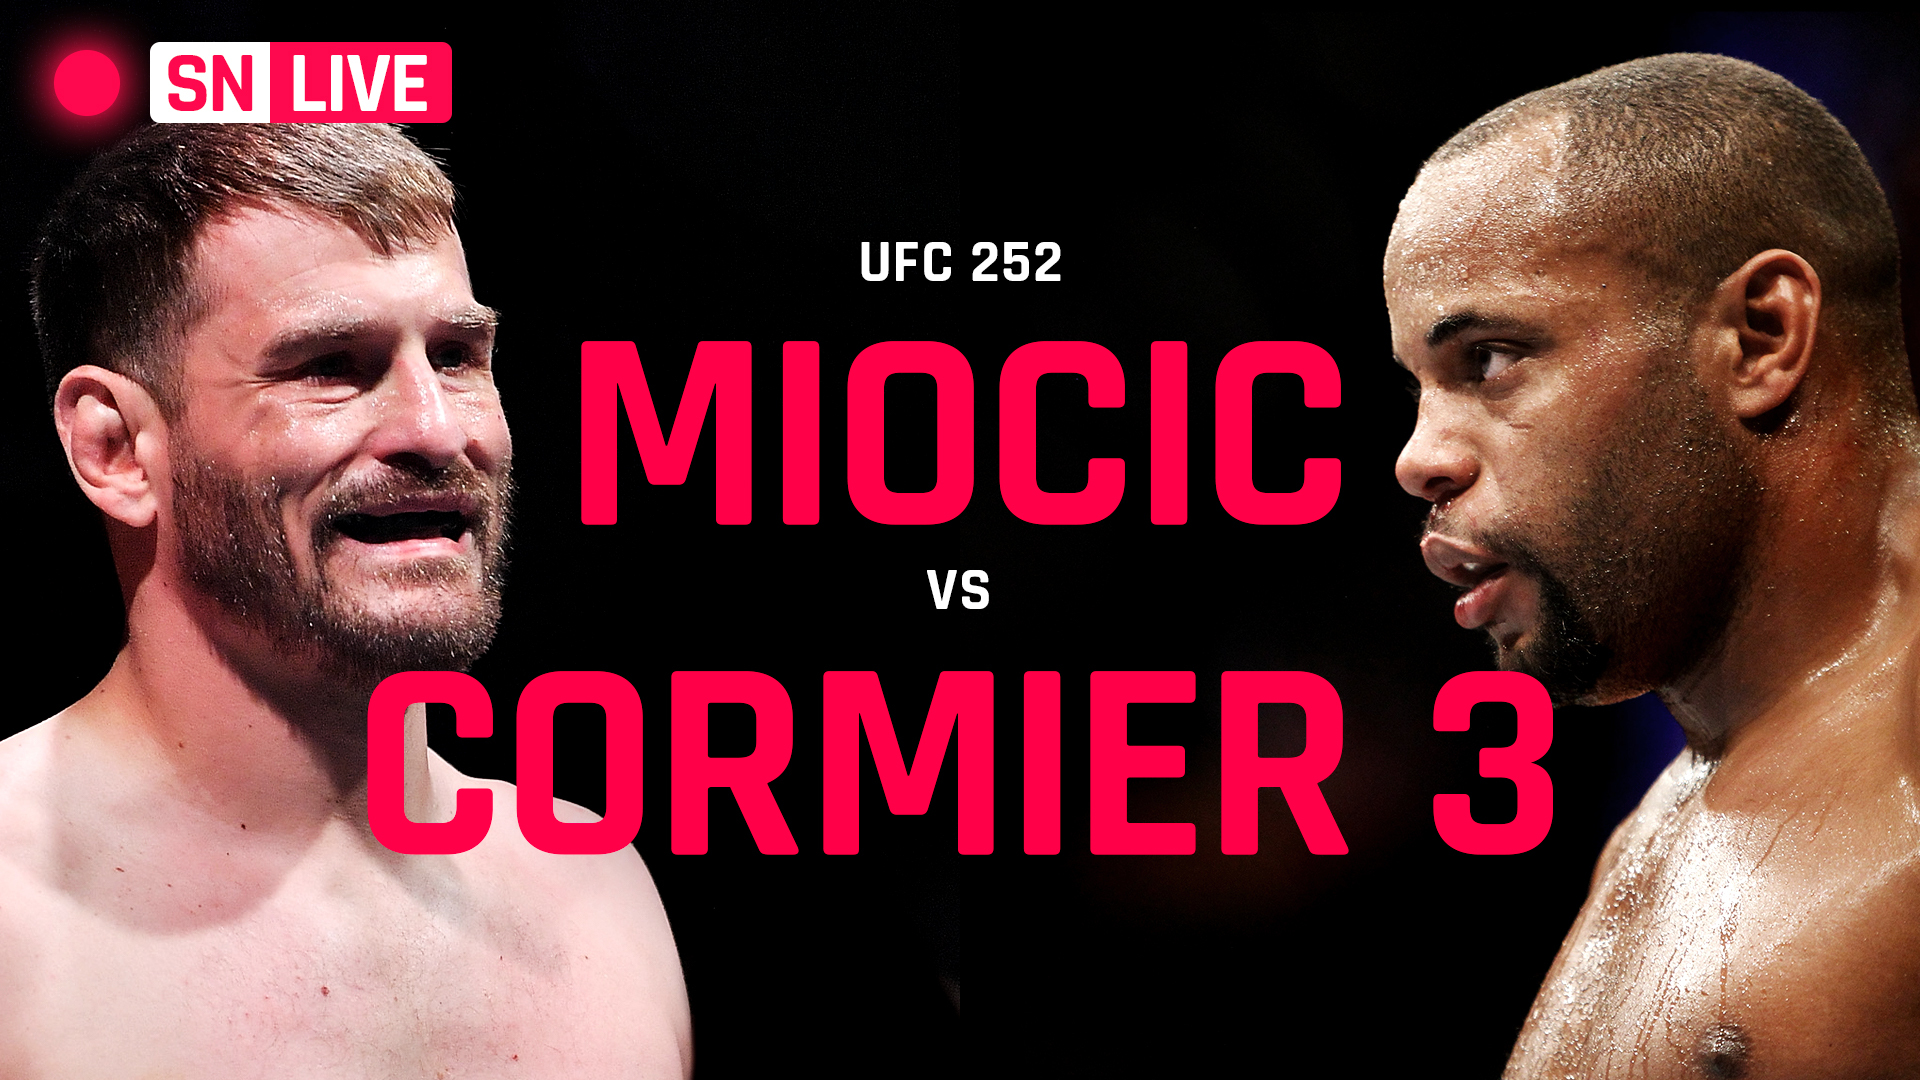 UFC 252 live updates, results, highlights from Stipe Miocic vs. Daniel Cormier 3 fight & full card 1